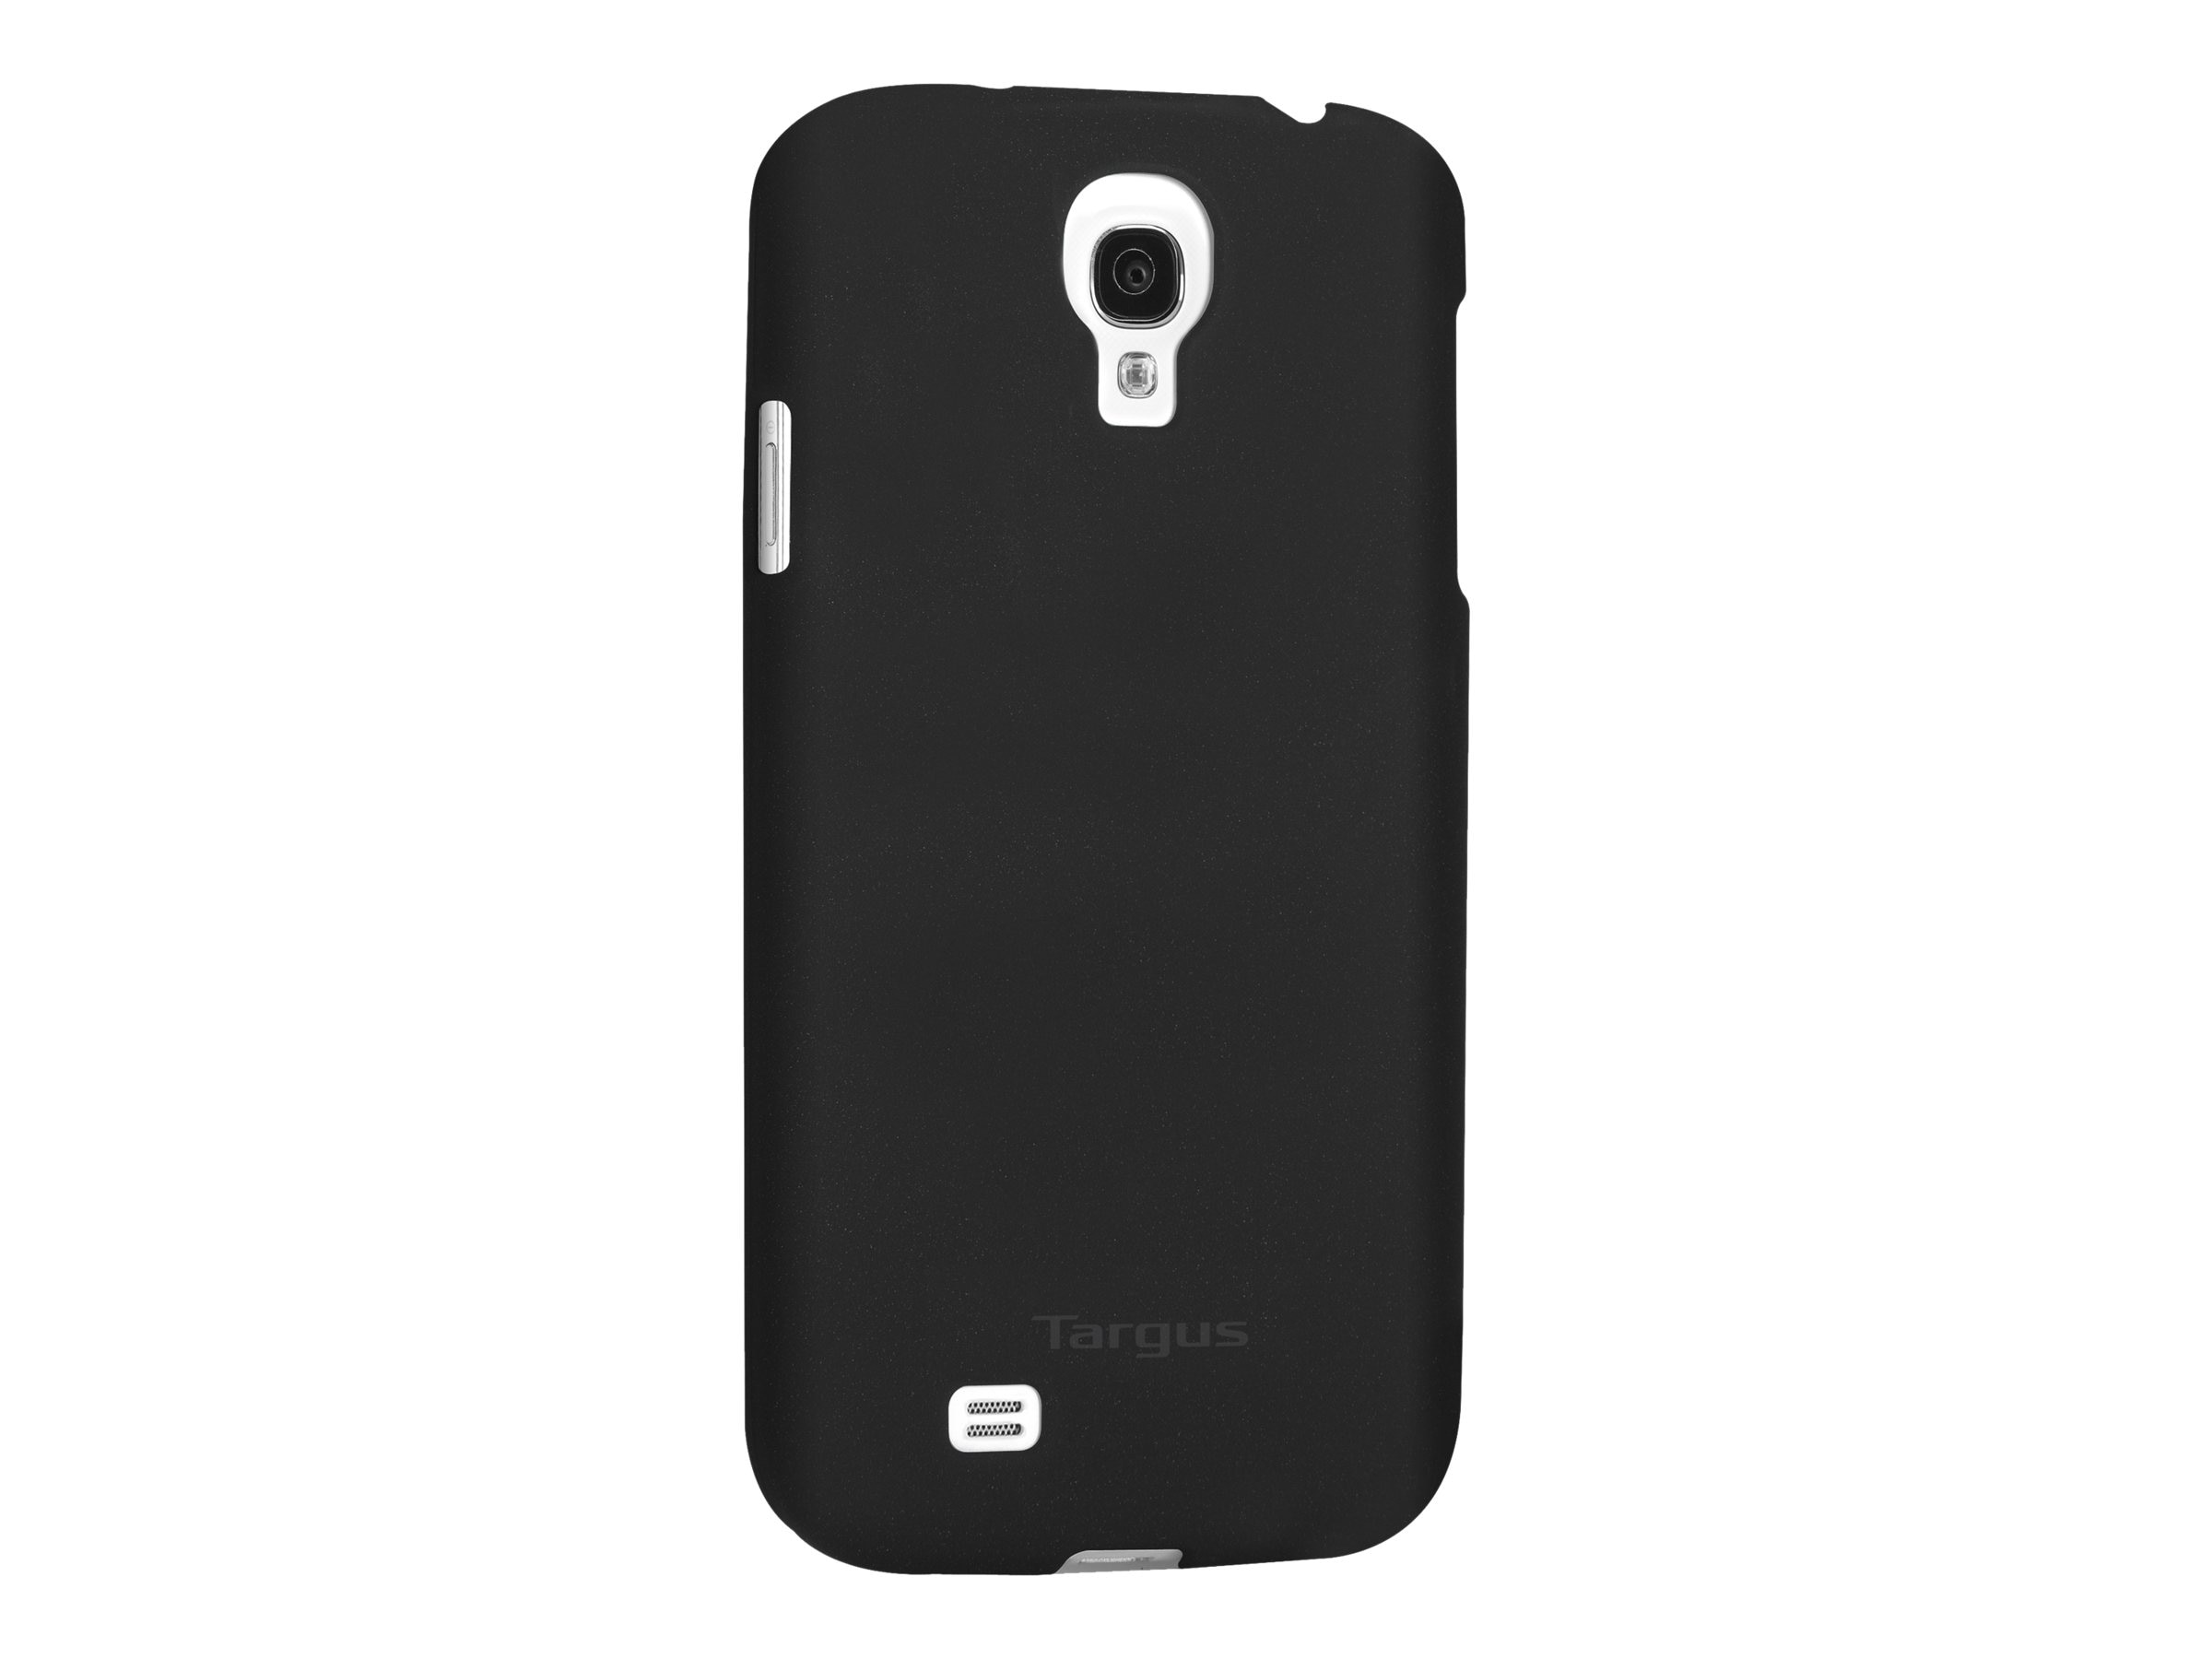 Targus Samsung Galaxy S4 Snap  shell, TFD037US, 15724319, Carrying Cases - Phones/PDAs